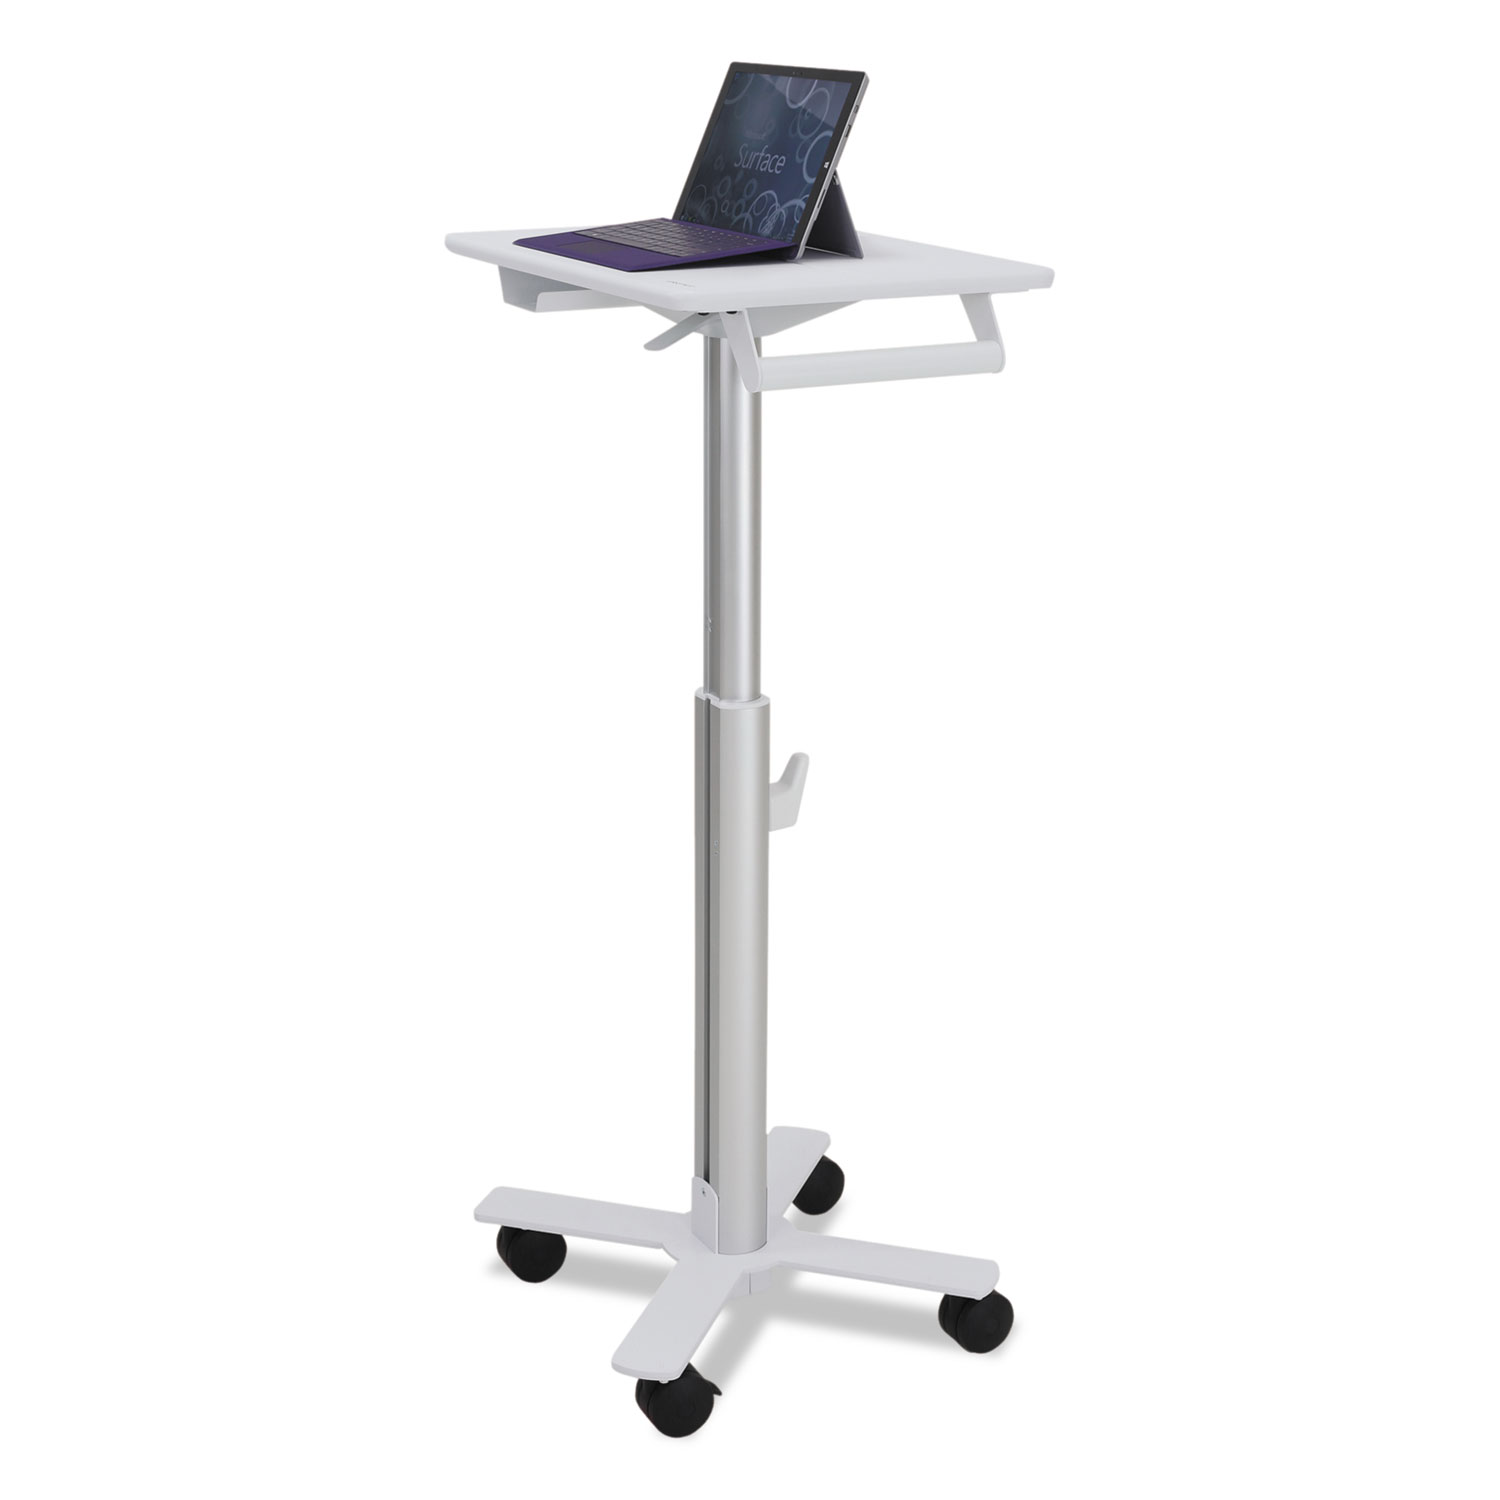 StyleView 10 S-Tablet Cart For MS Surface, 23″ X 19″ X 33″ – 48″, White/Aluminum